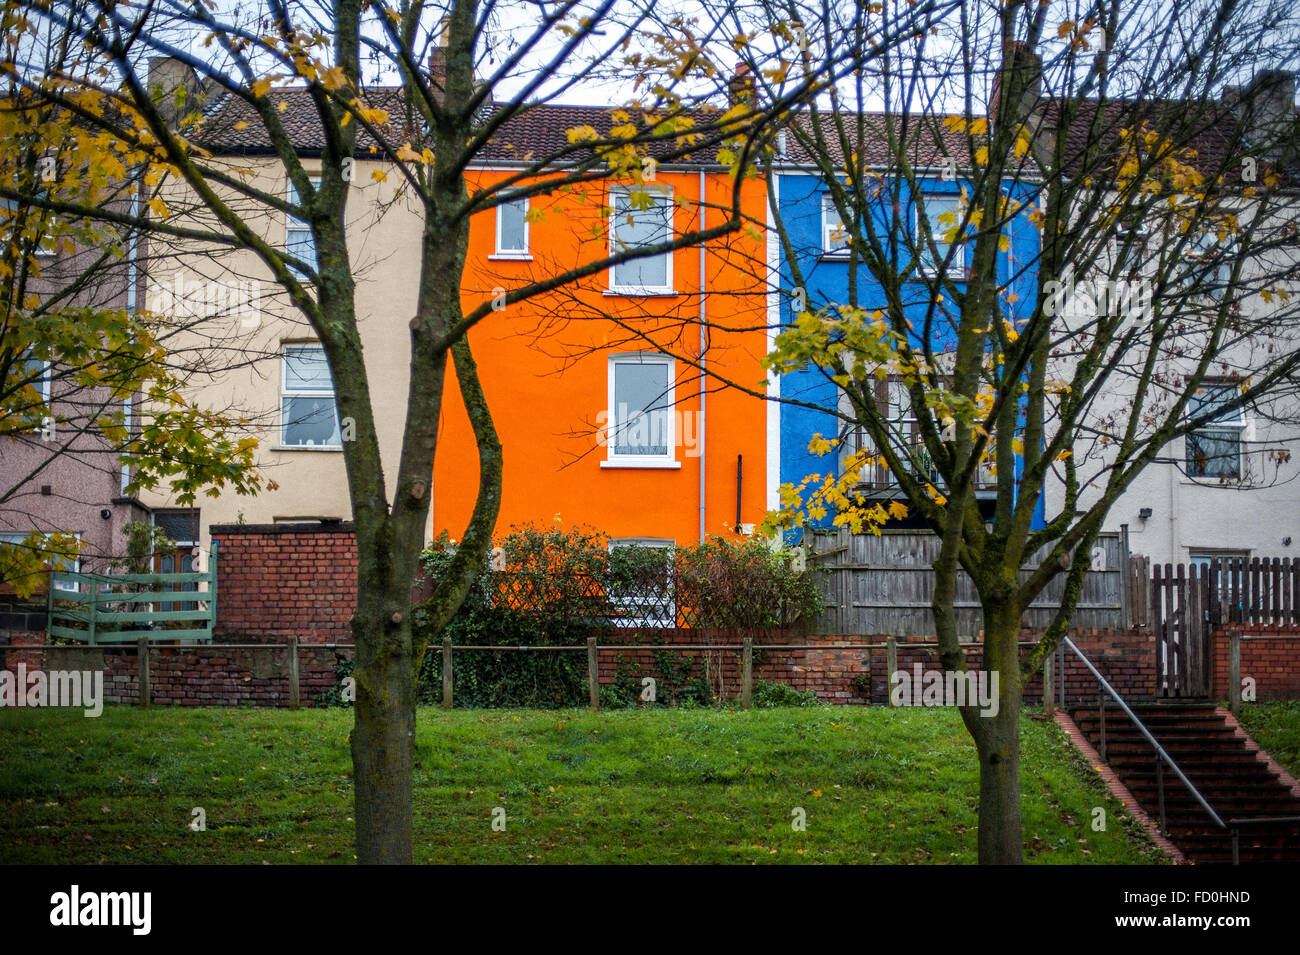 Colourful tall terraced houses in Totterdown, Bristol, England - Stock Image